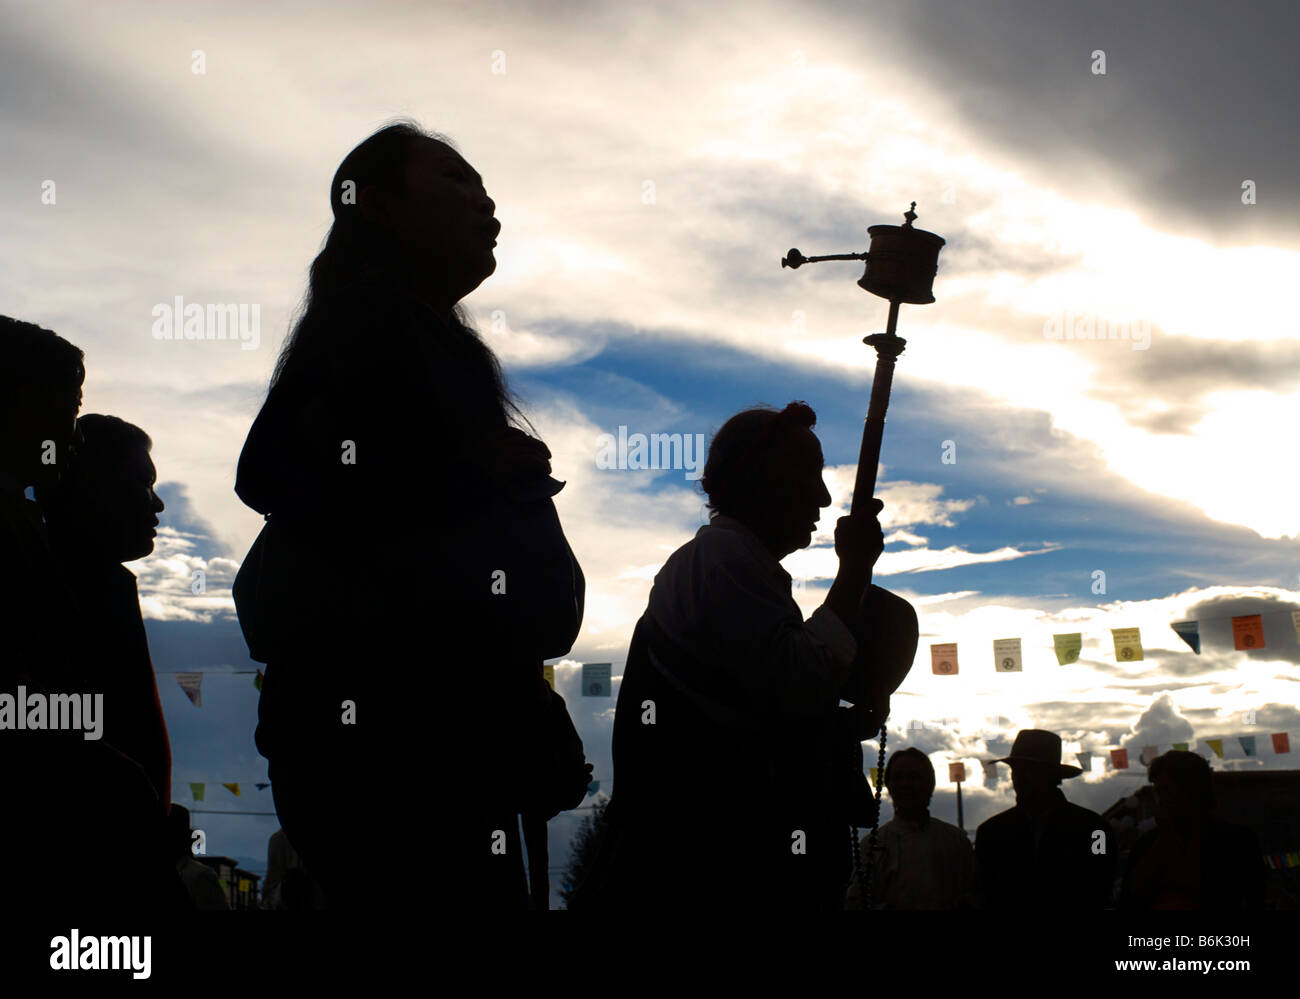 Silhouetted shape of a Tibetan pilgrims in Barkor Square, Lhasa, Tibet - Stock Image